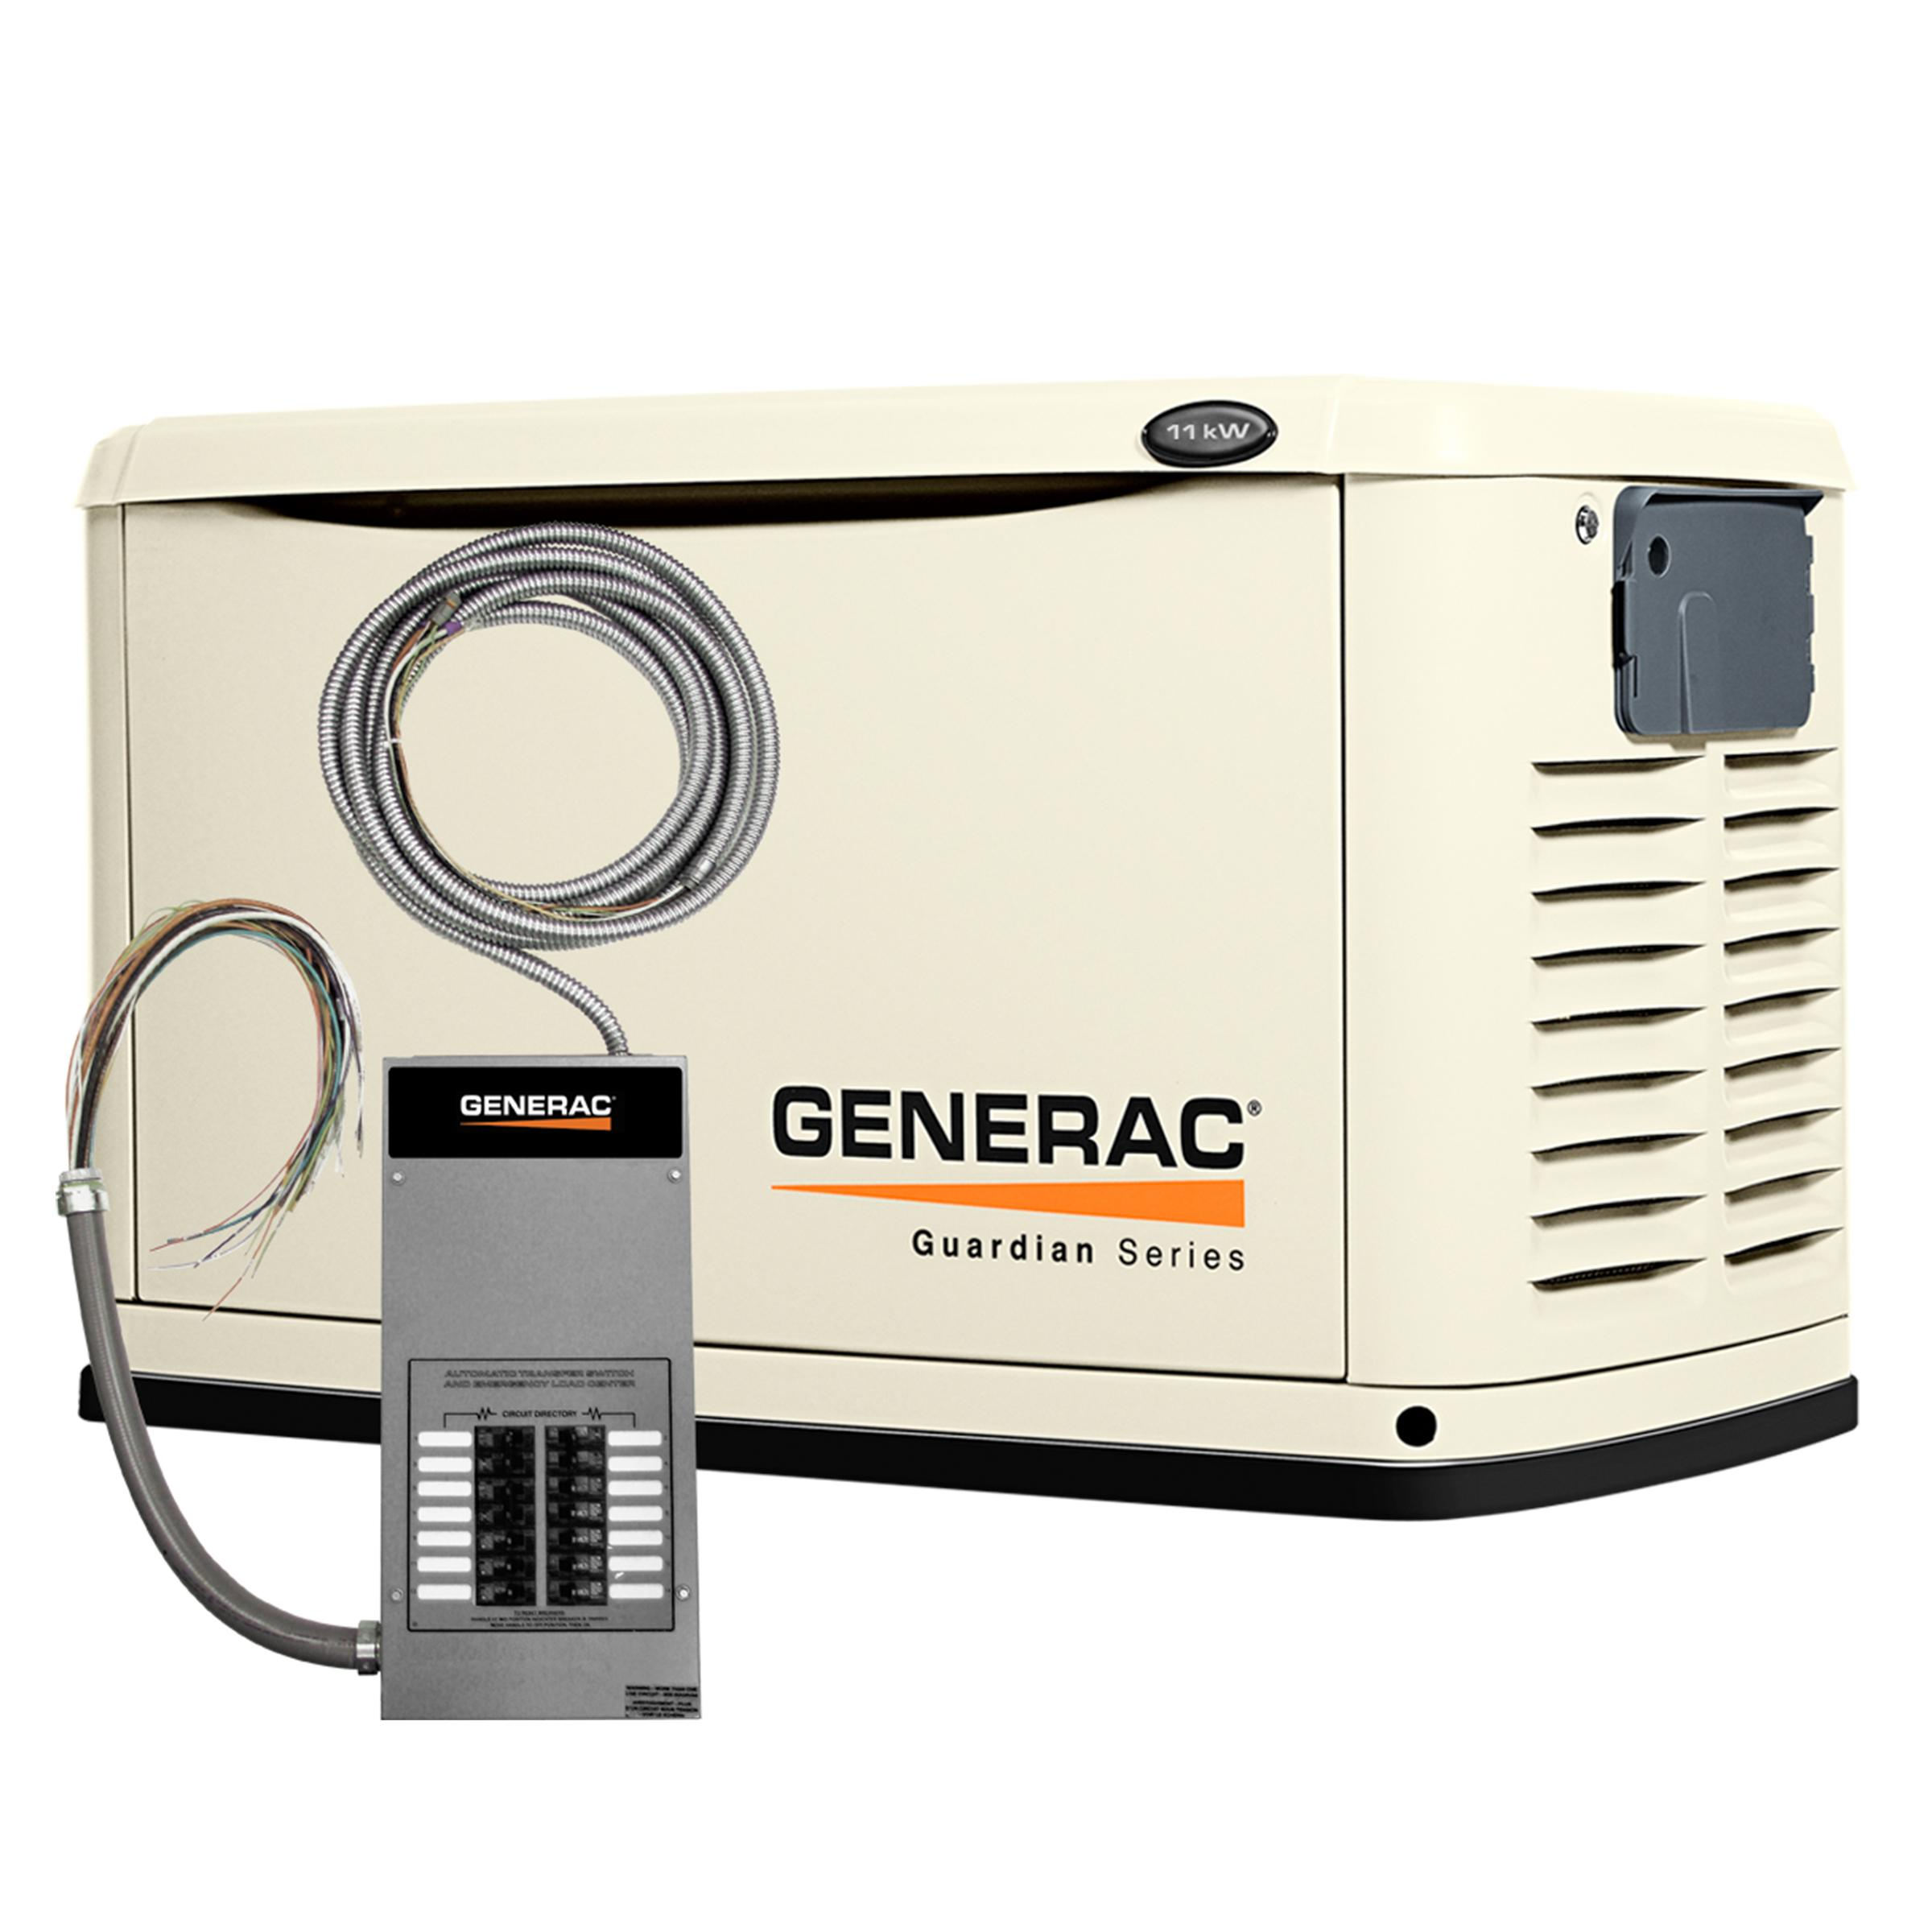 3585dd29 4326 44ff 97eb 1935231b8932._CB323460416_ amazon com generac 6437 guardian series, 11kw air cooled standby 4000 Watt Generac Generator Wiring at gsmportal.co